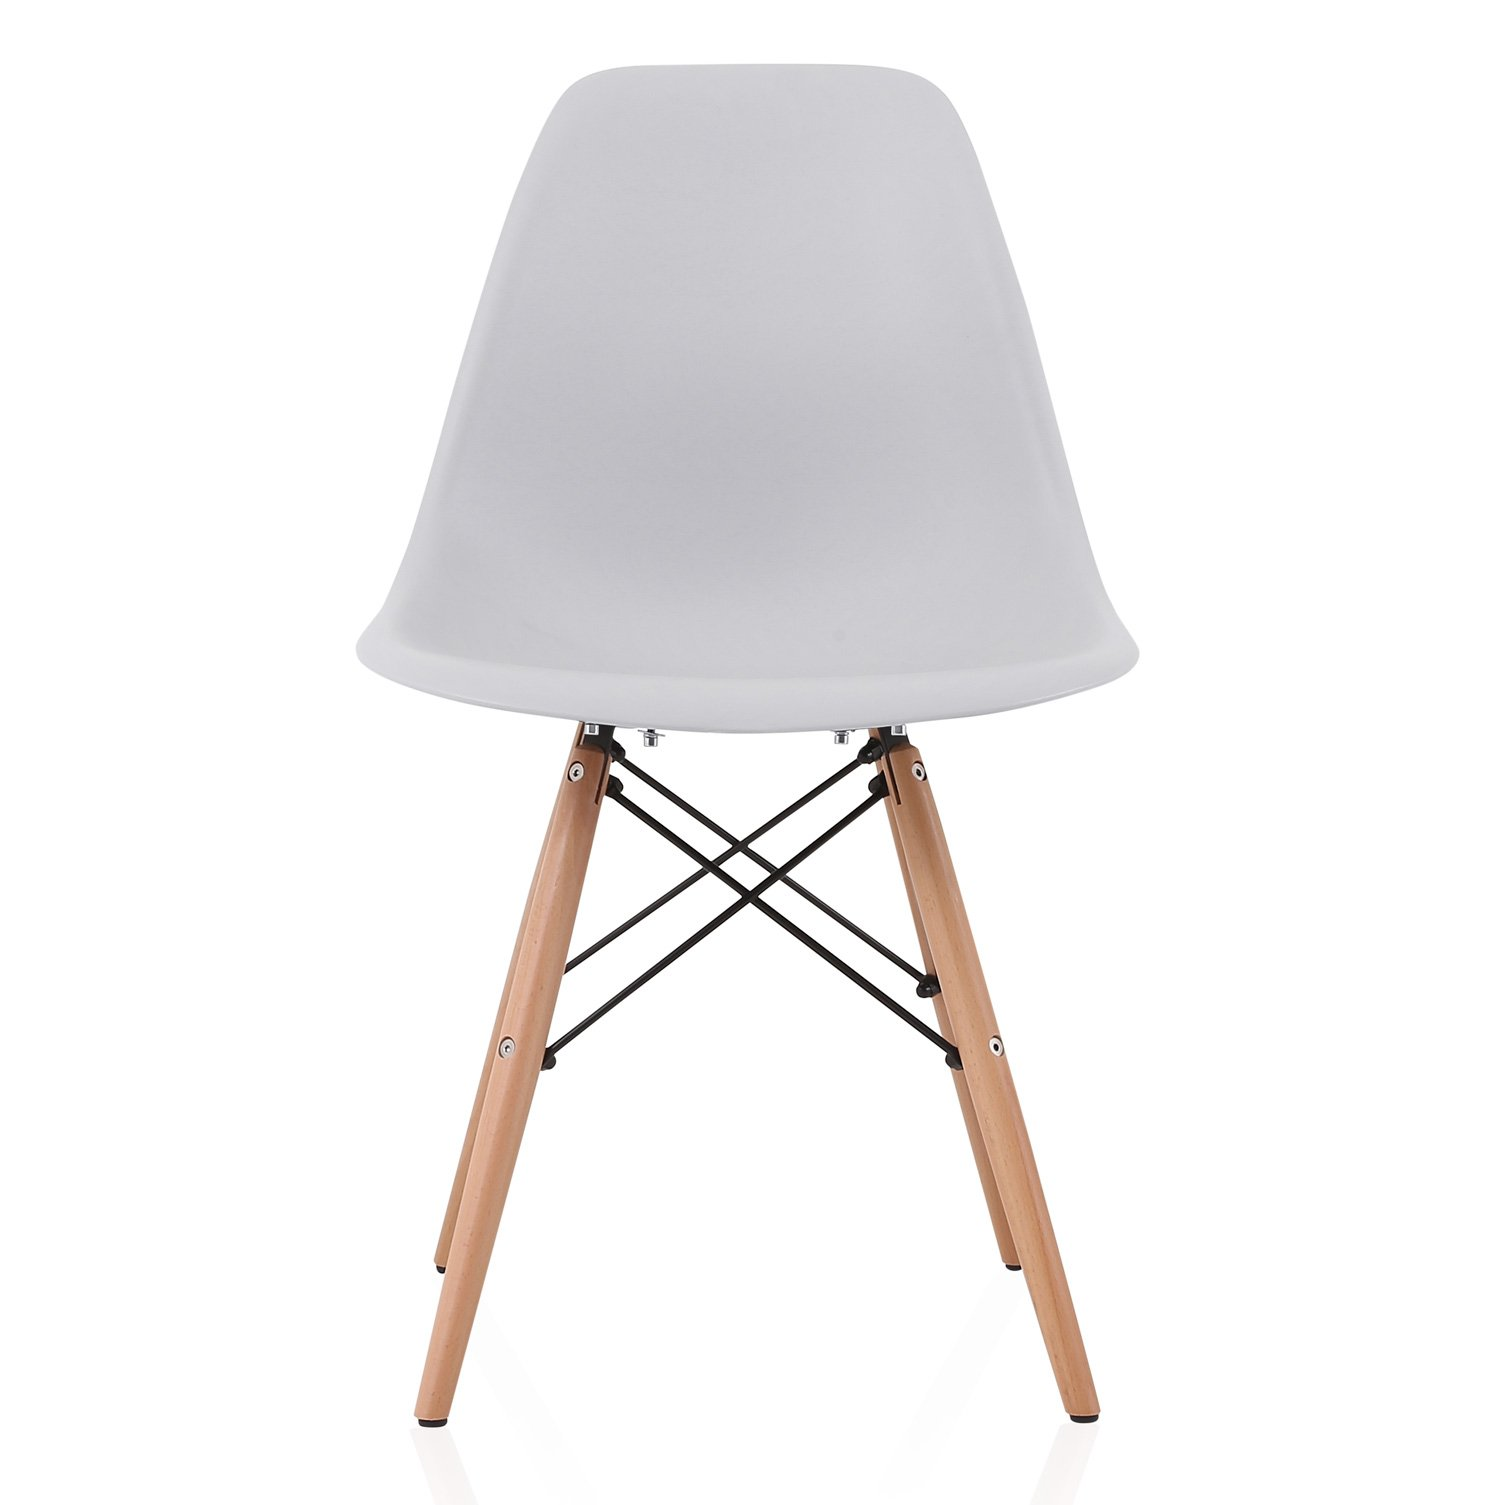 DSW Slope Light Gray Molded Plastic Dining Side Chair with Beech Wood Eiffel Legs